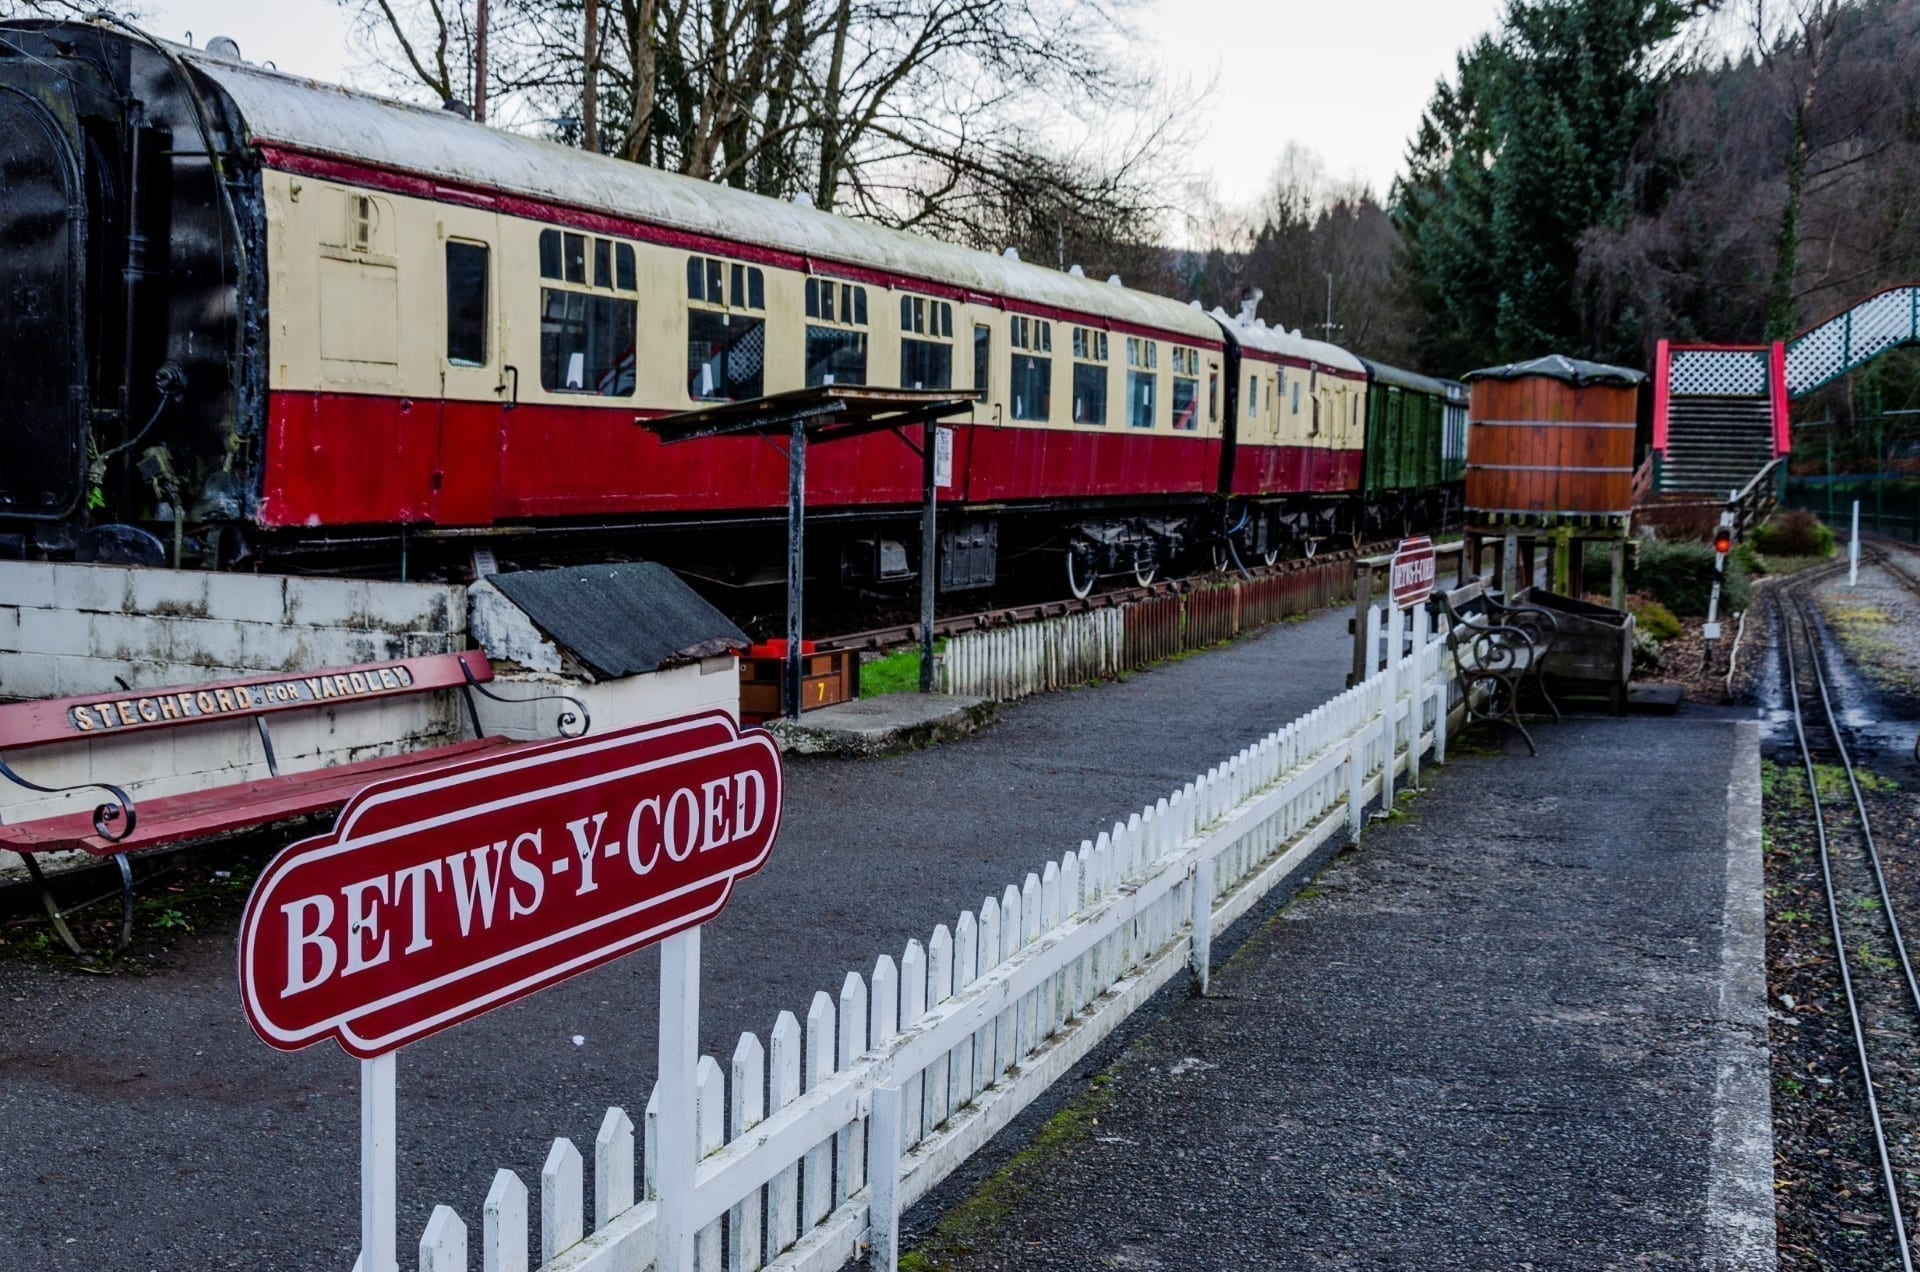 Railway museum in North Wales